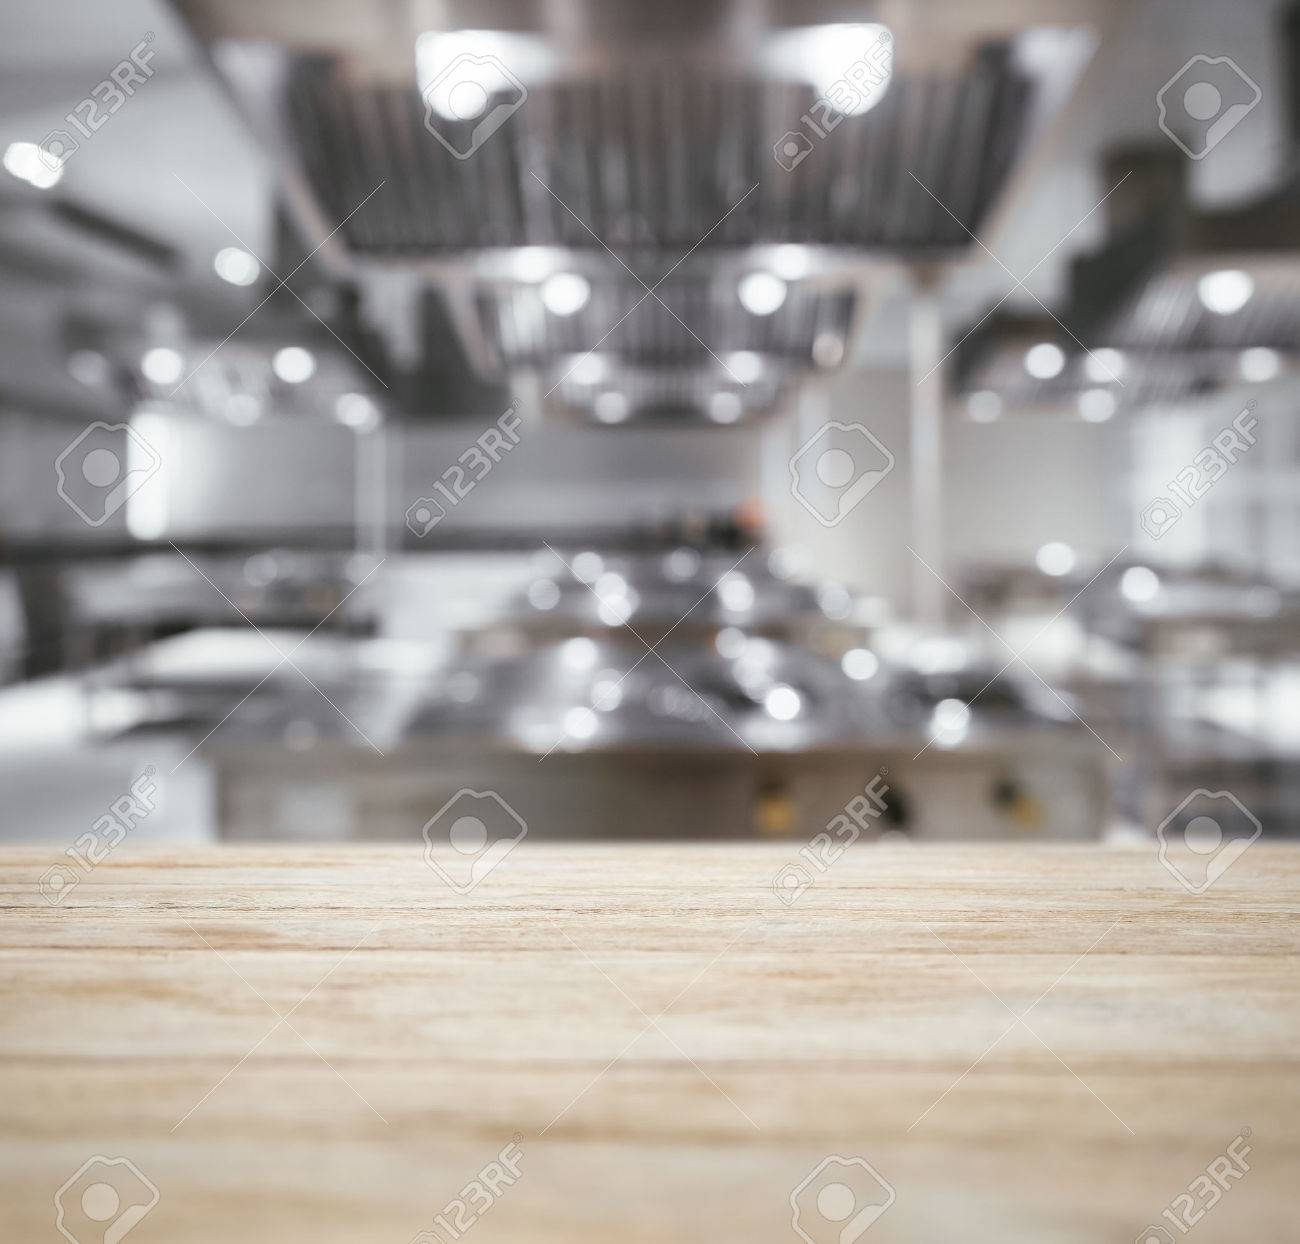 Table top Counter with Blurred Kitchen Background - 59492183